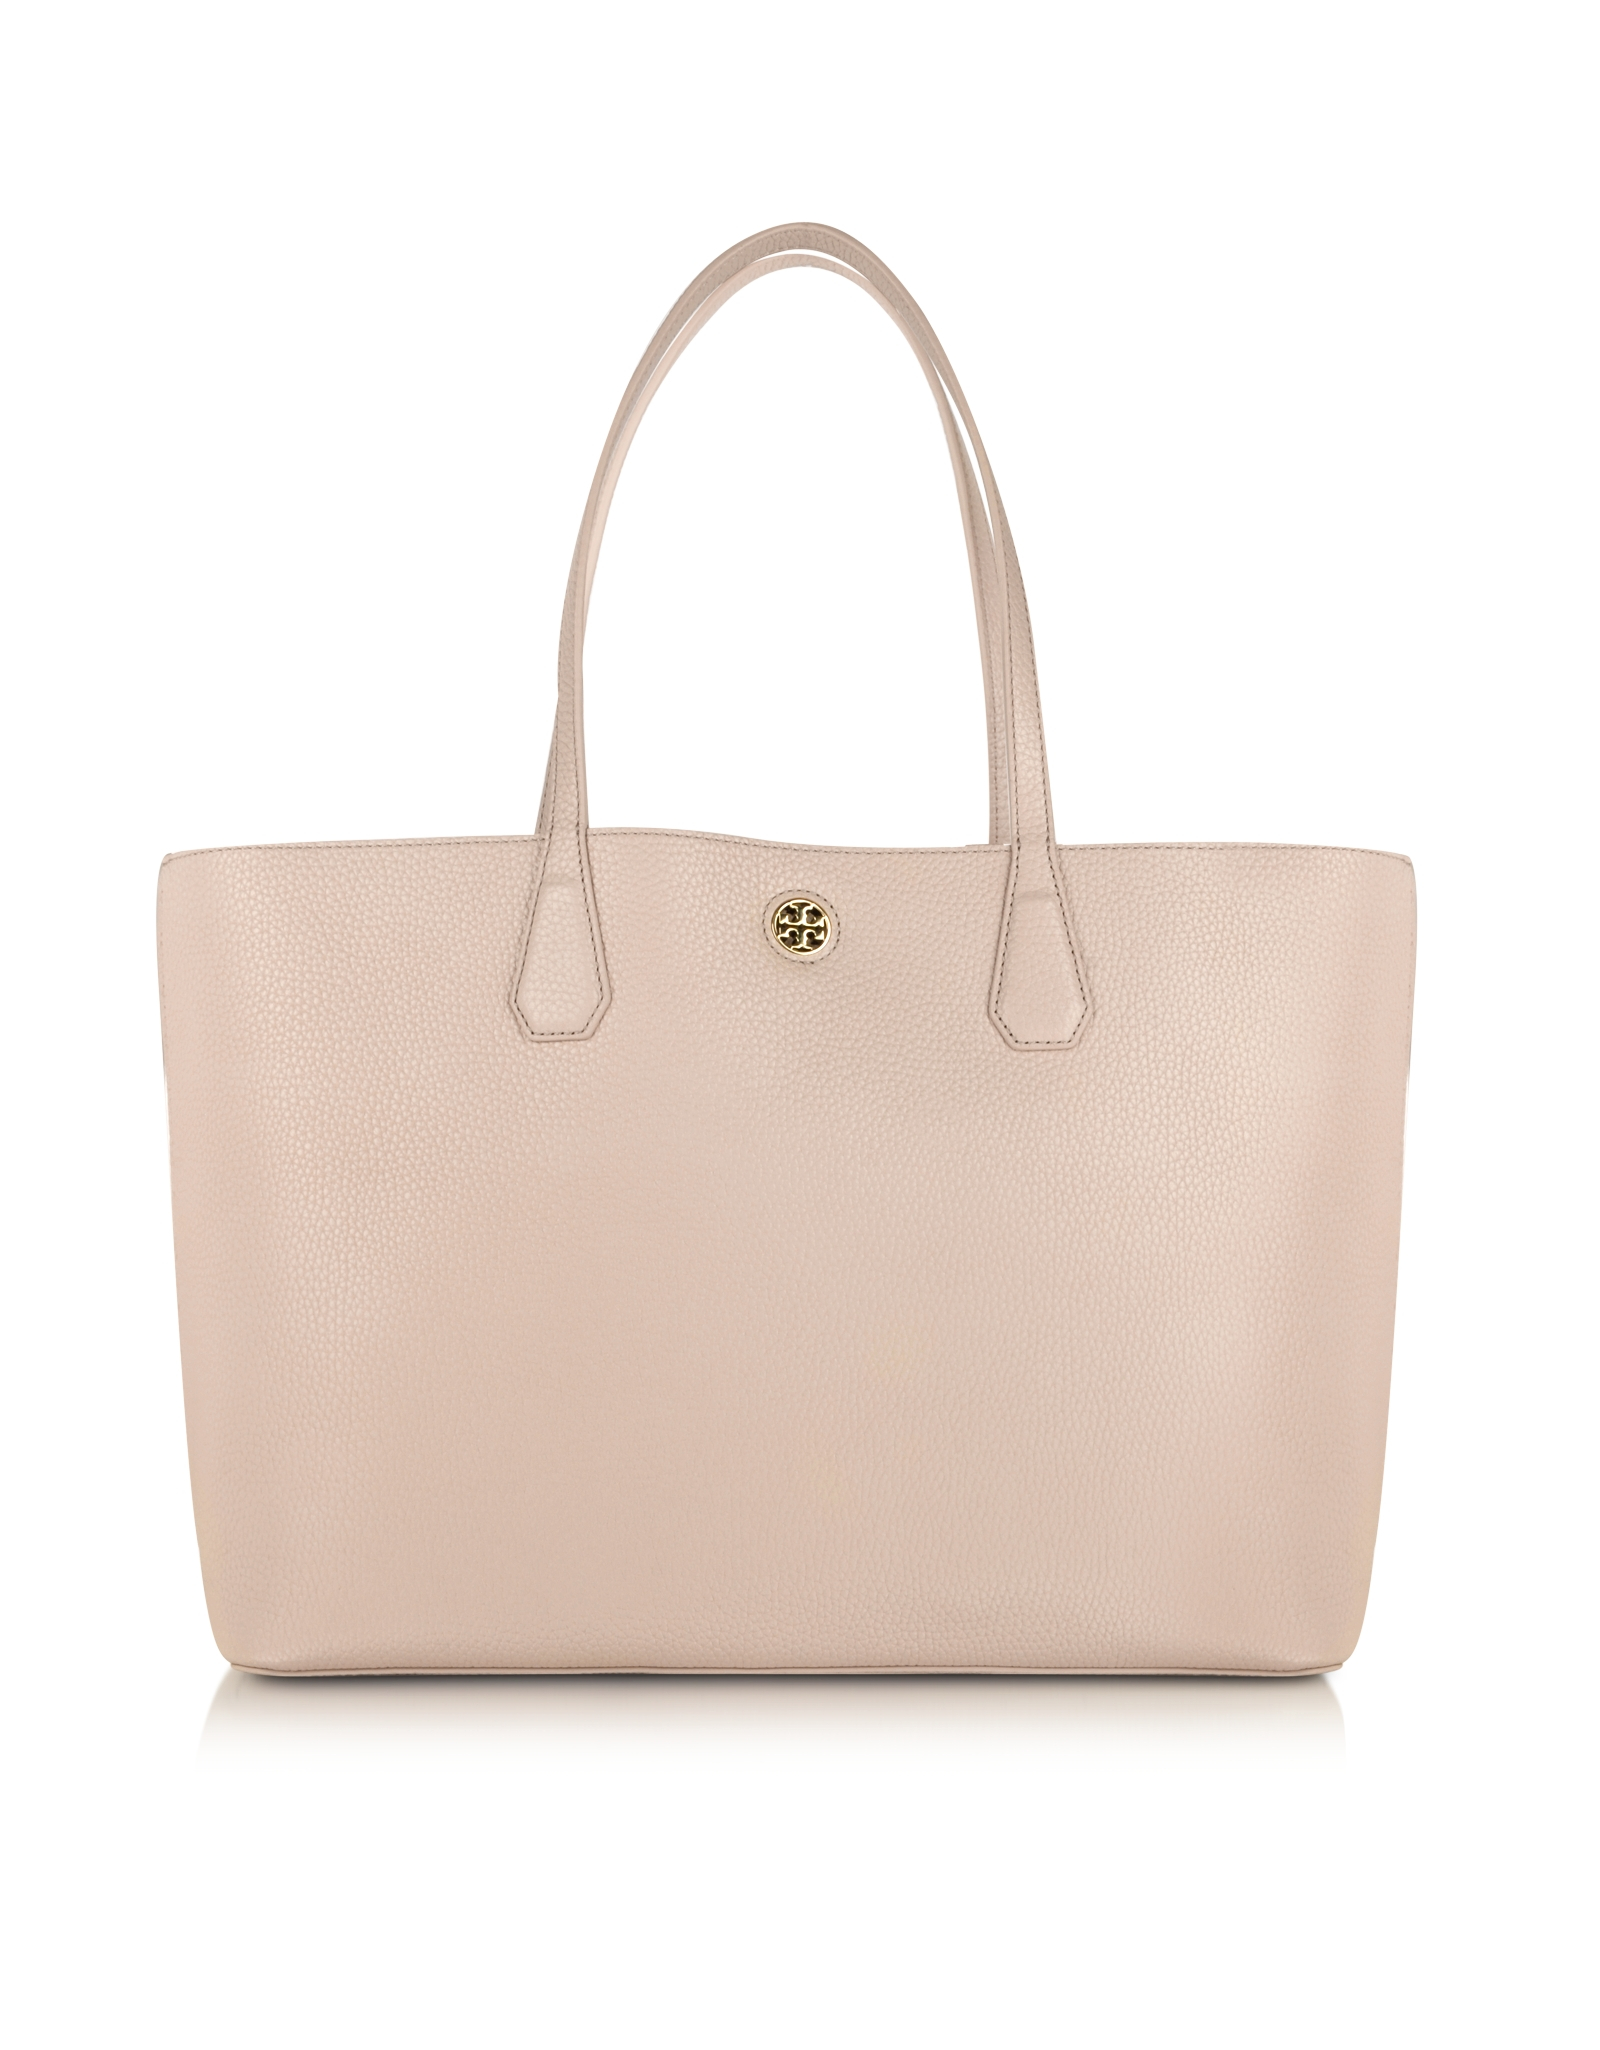 2a5fd8b90e7 Lyst - Tory Burch Perry Leather Tote in Brown